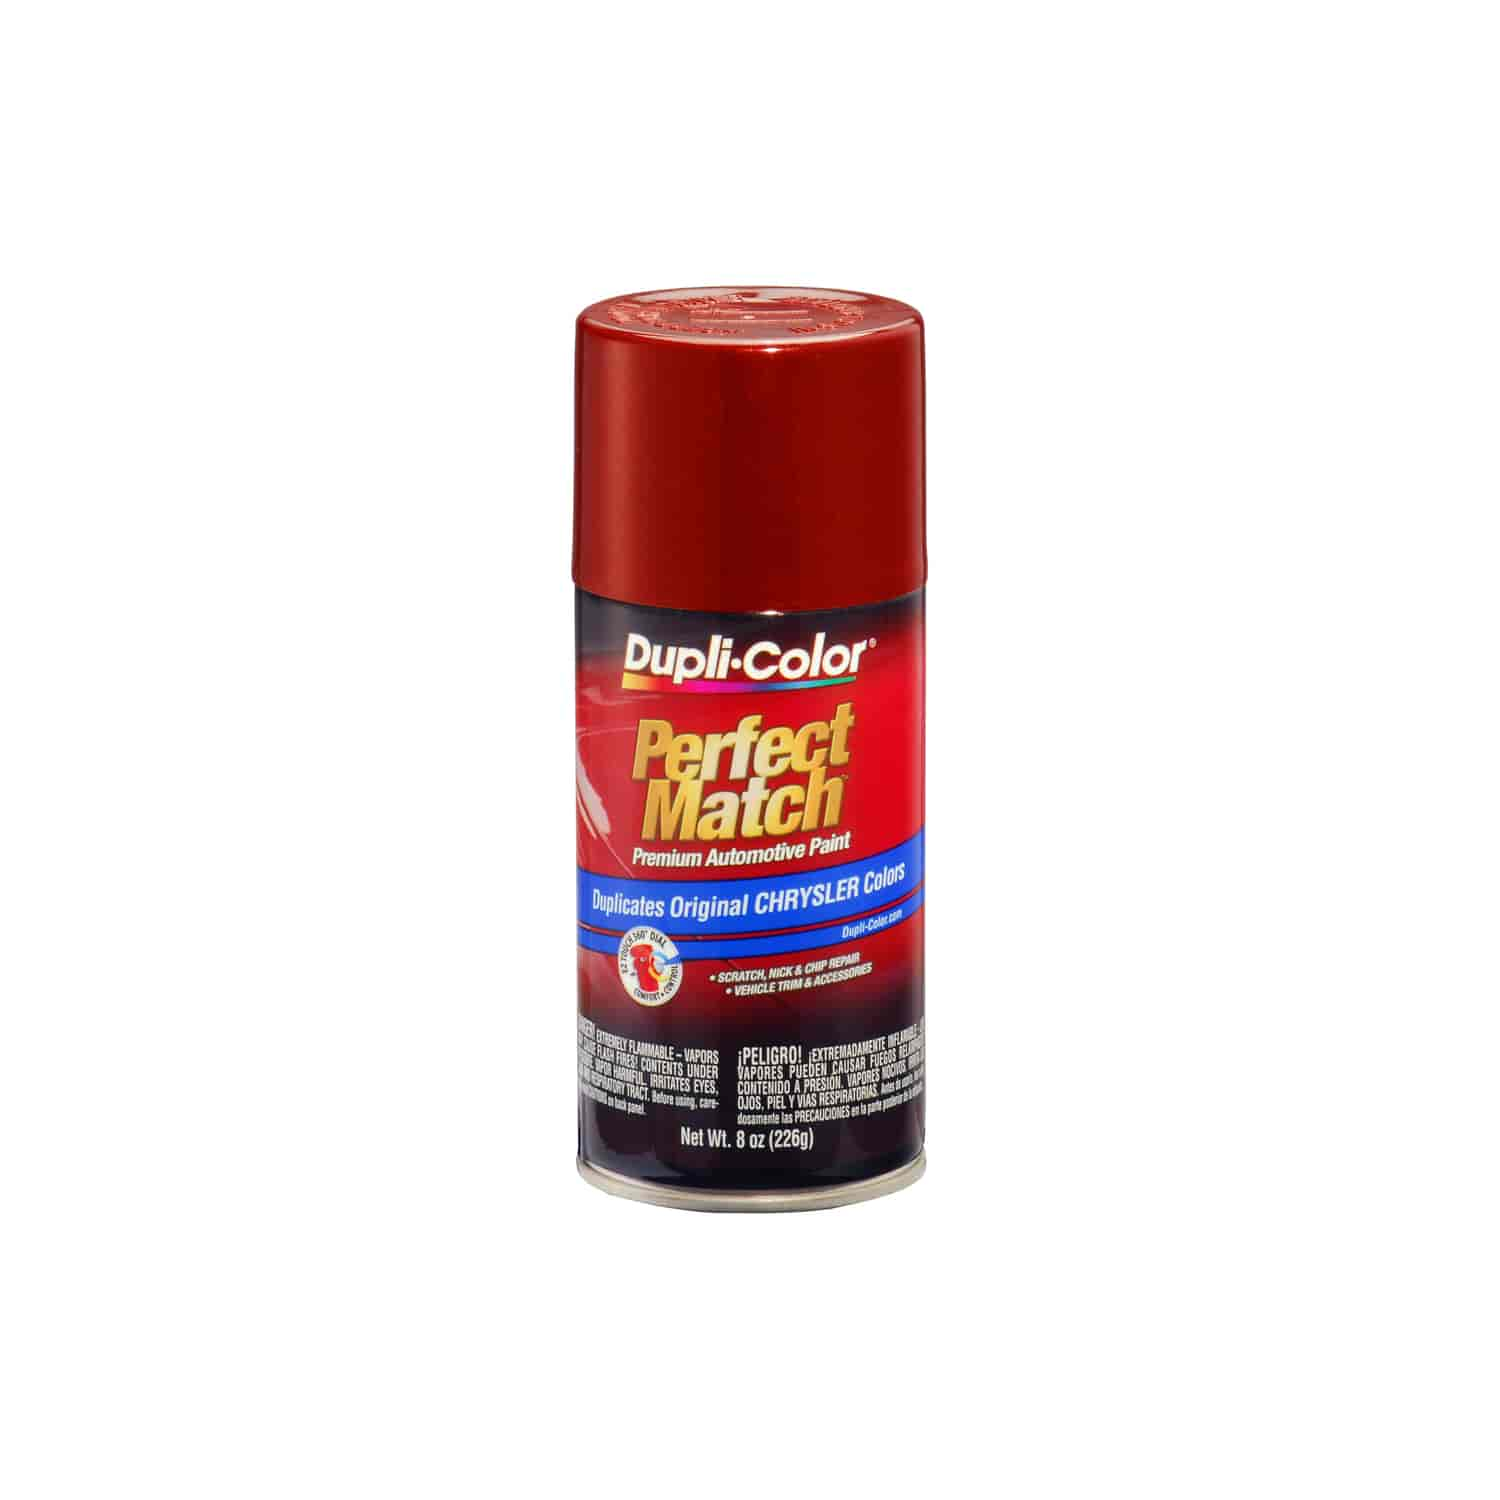 Duplicolor BCC0424 - Duplicolor Perfect Match Touch-Up Paint